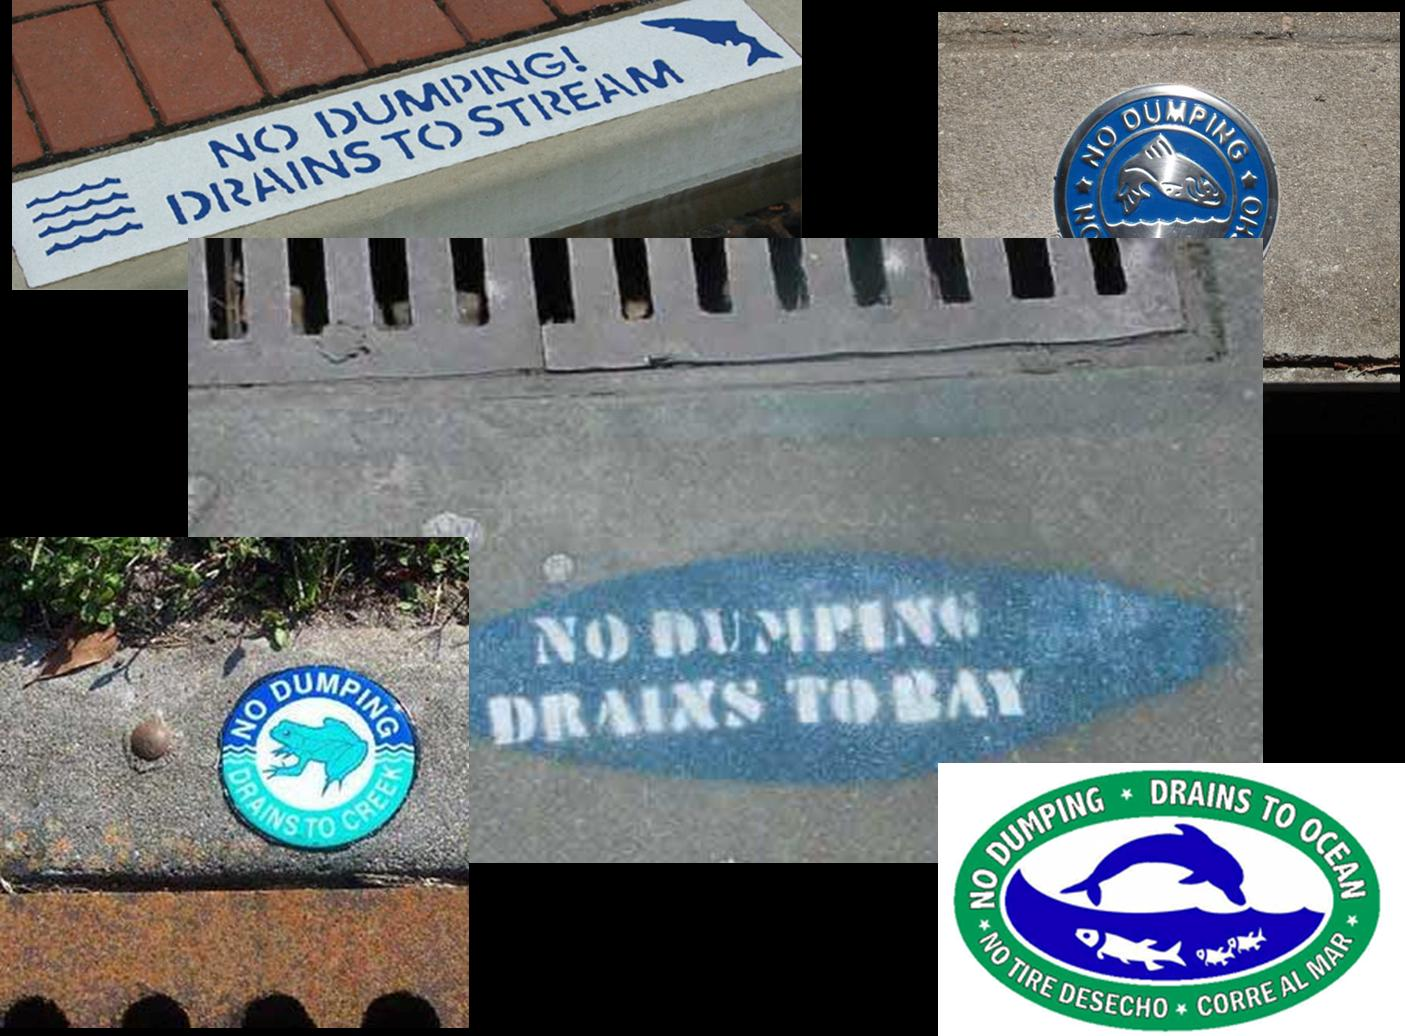 No Dumping Images